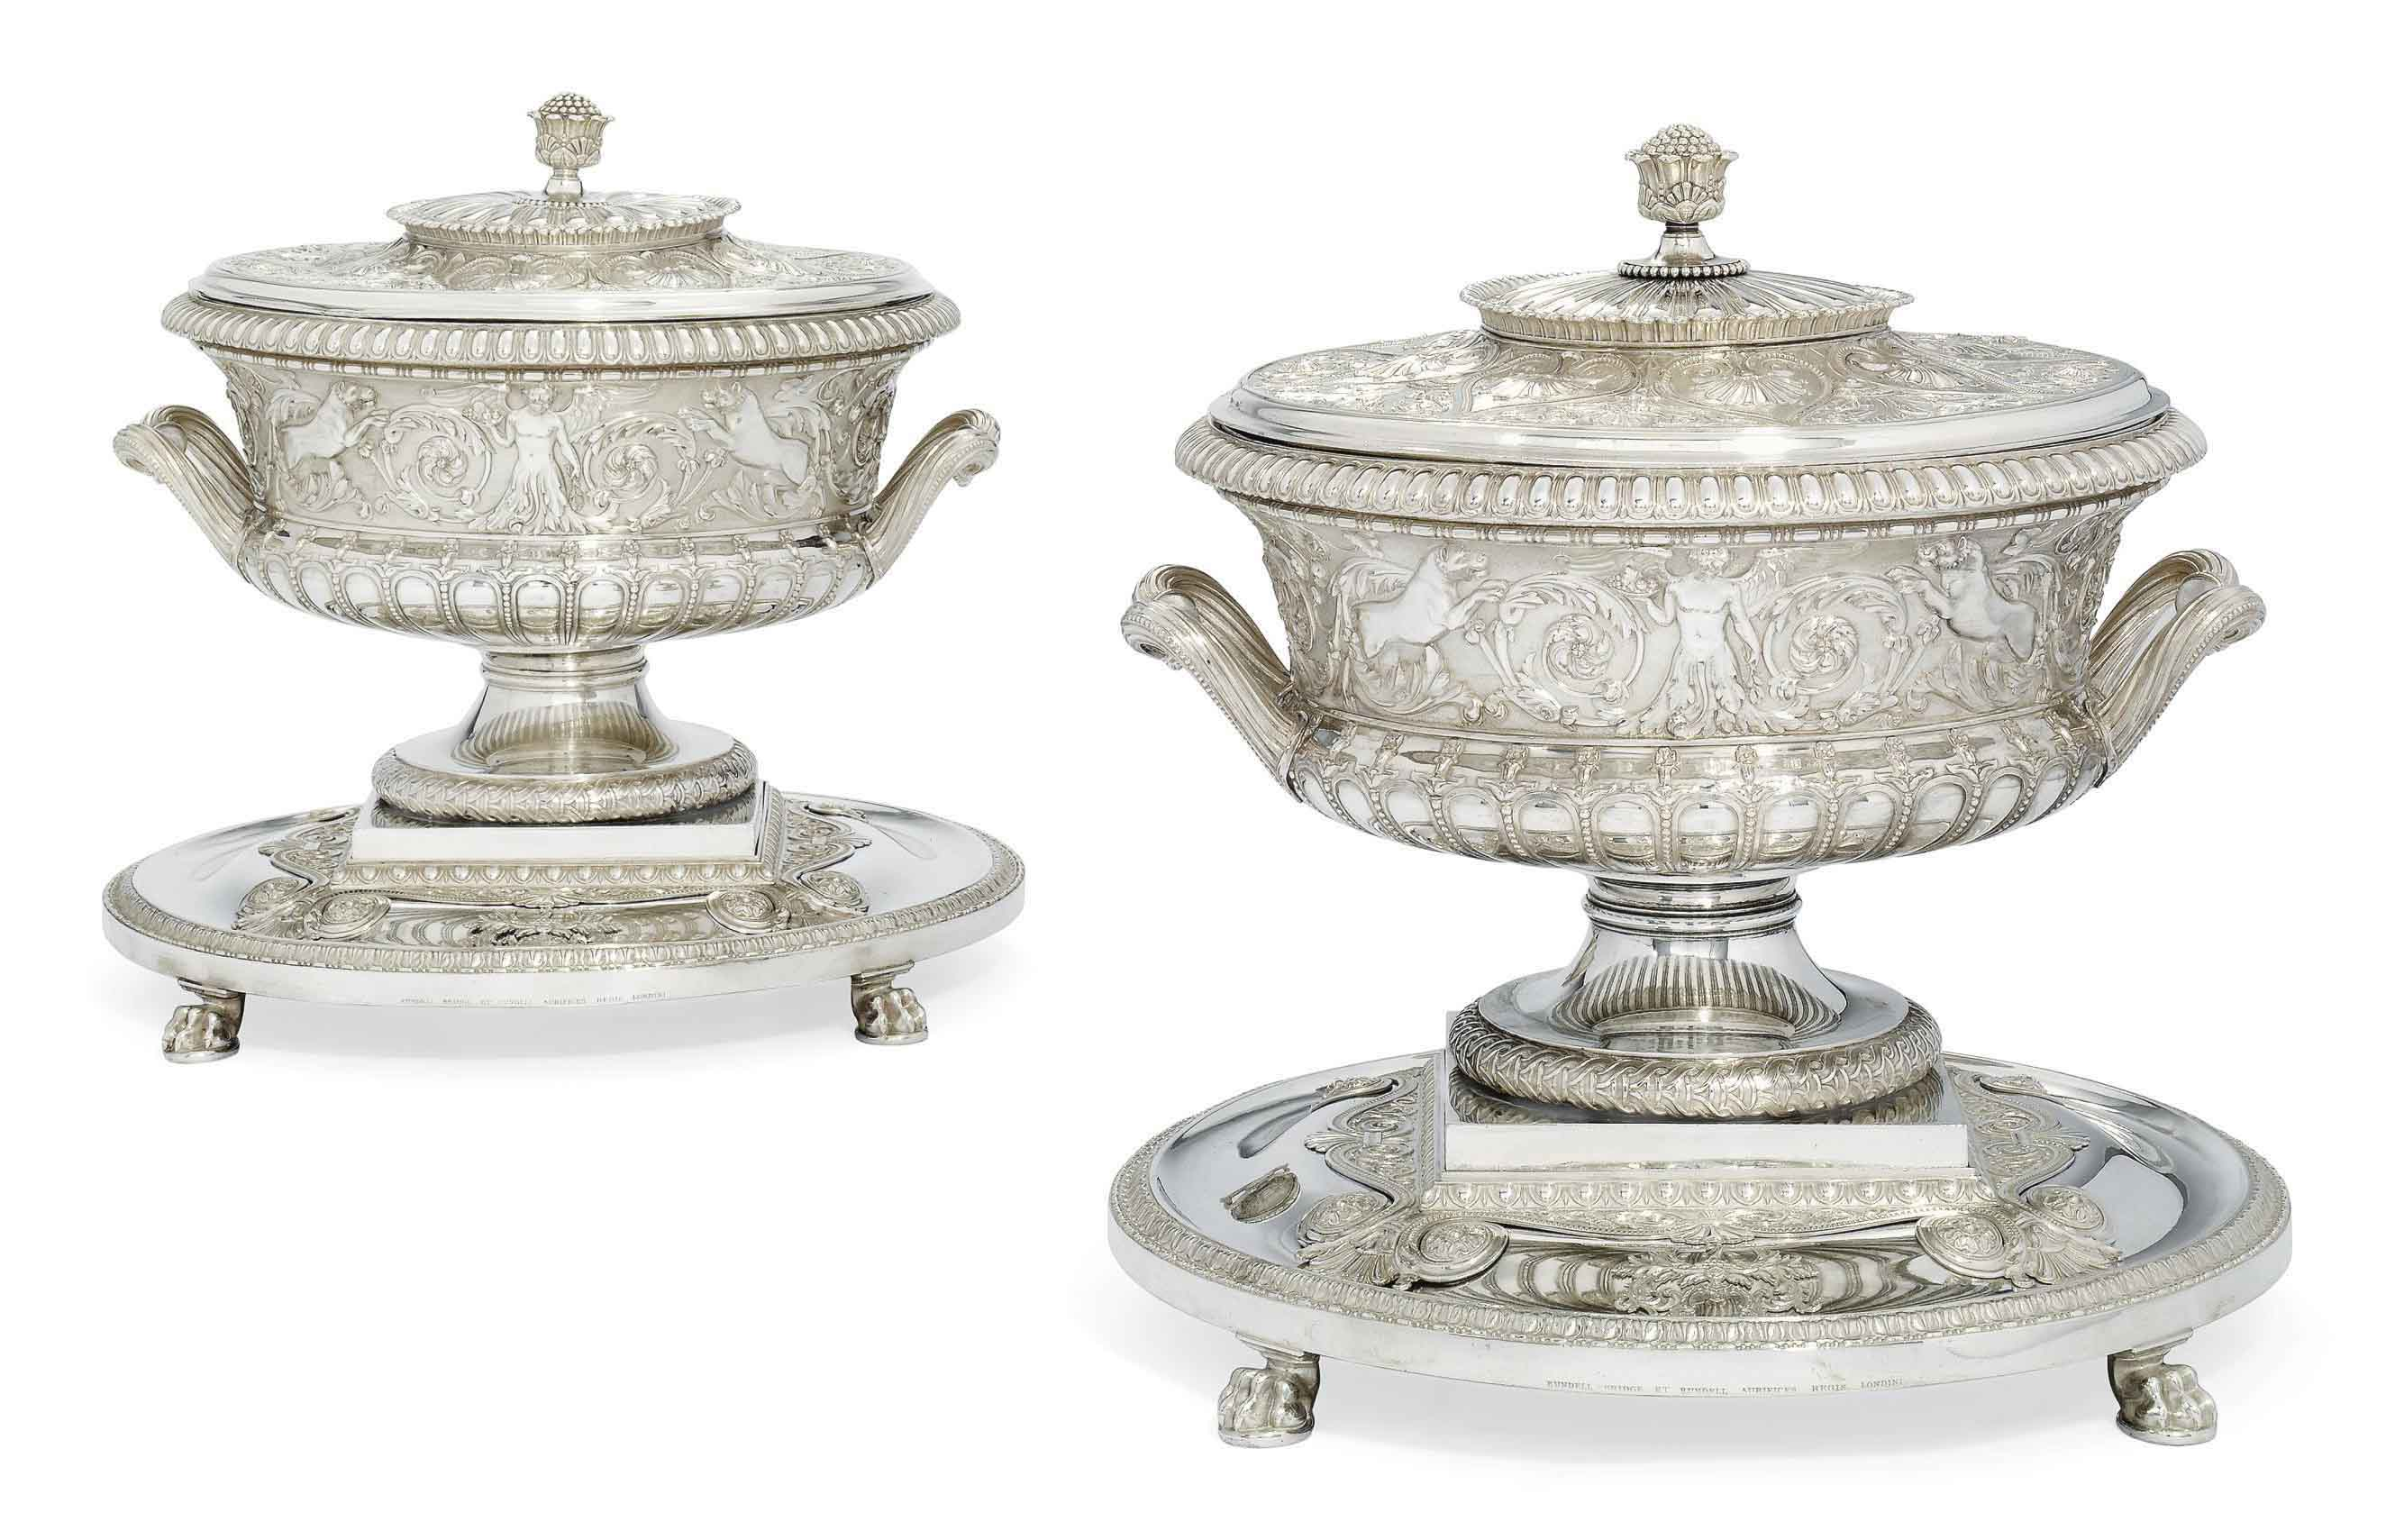 A PAIR OF GEORGE IV SILVER SOUP-TUREENS, STANDS, COVERS AND LINERS FROM THE SUTTON SERVICE